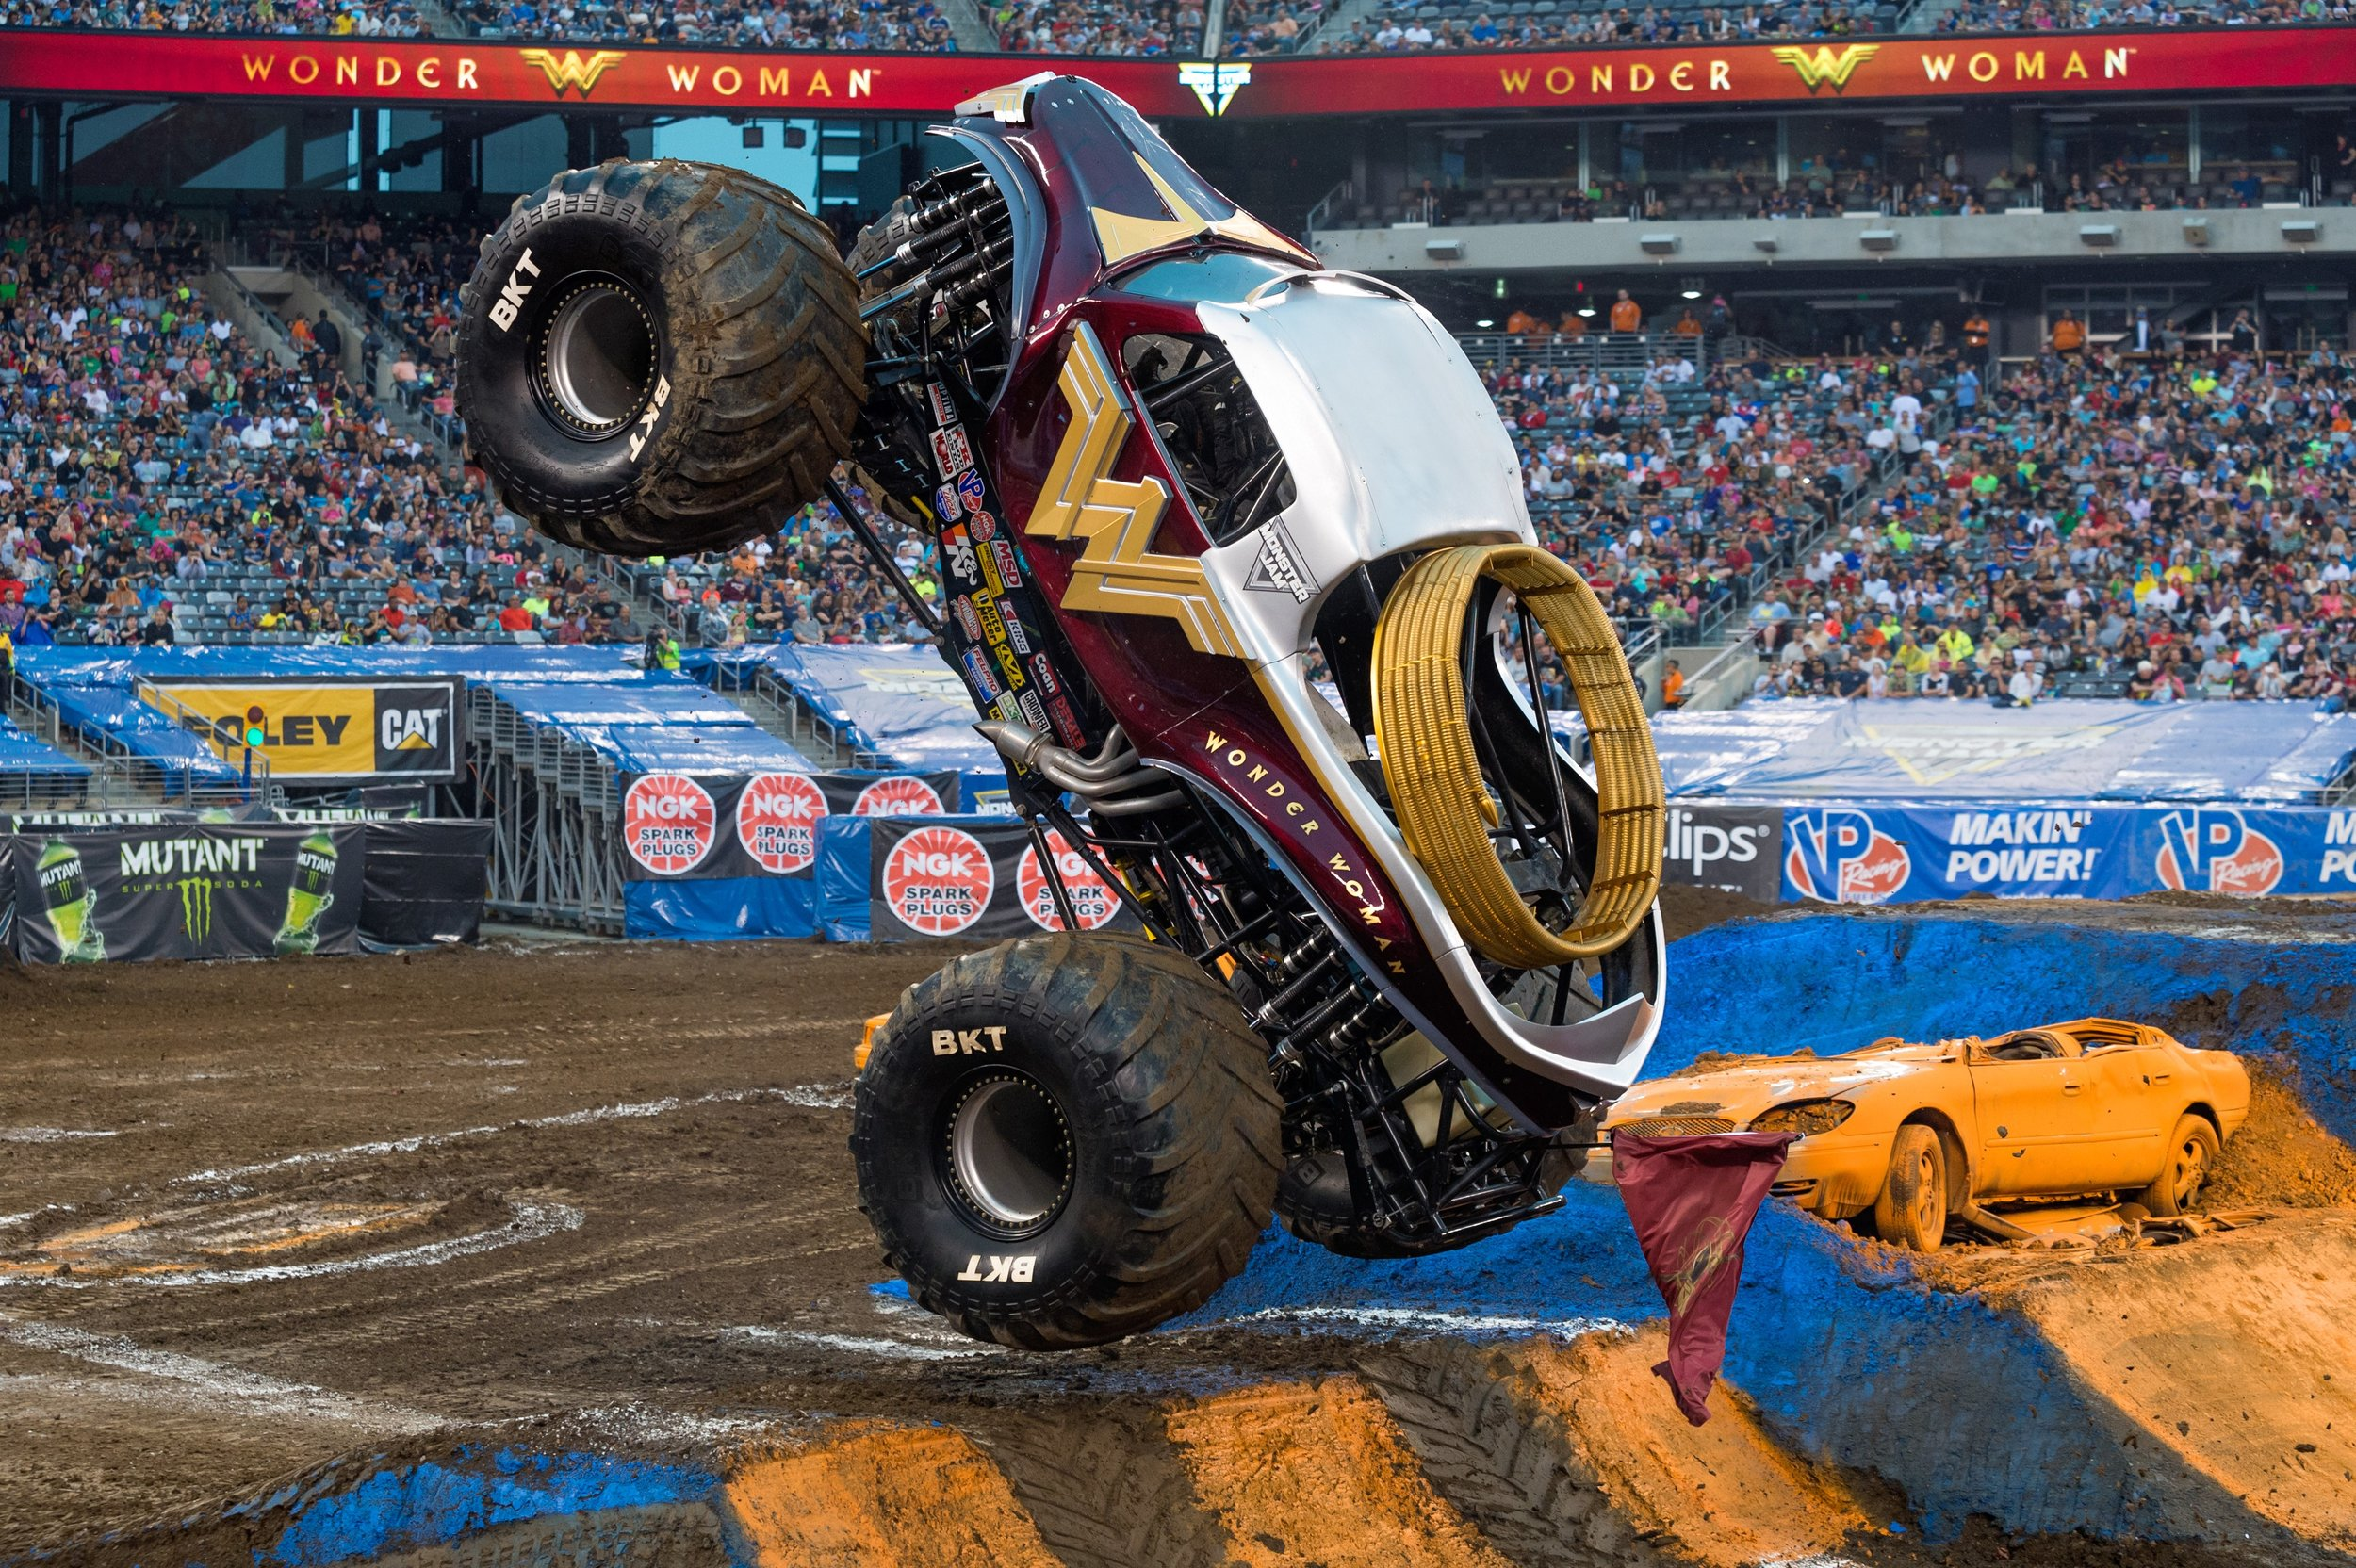 Wonder Woman Monster Jam truck.jpg